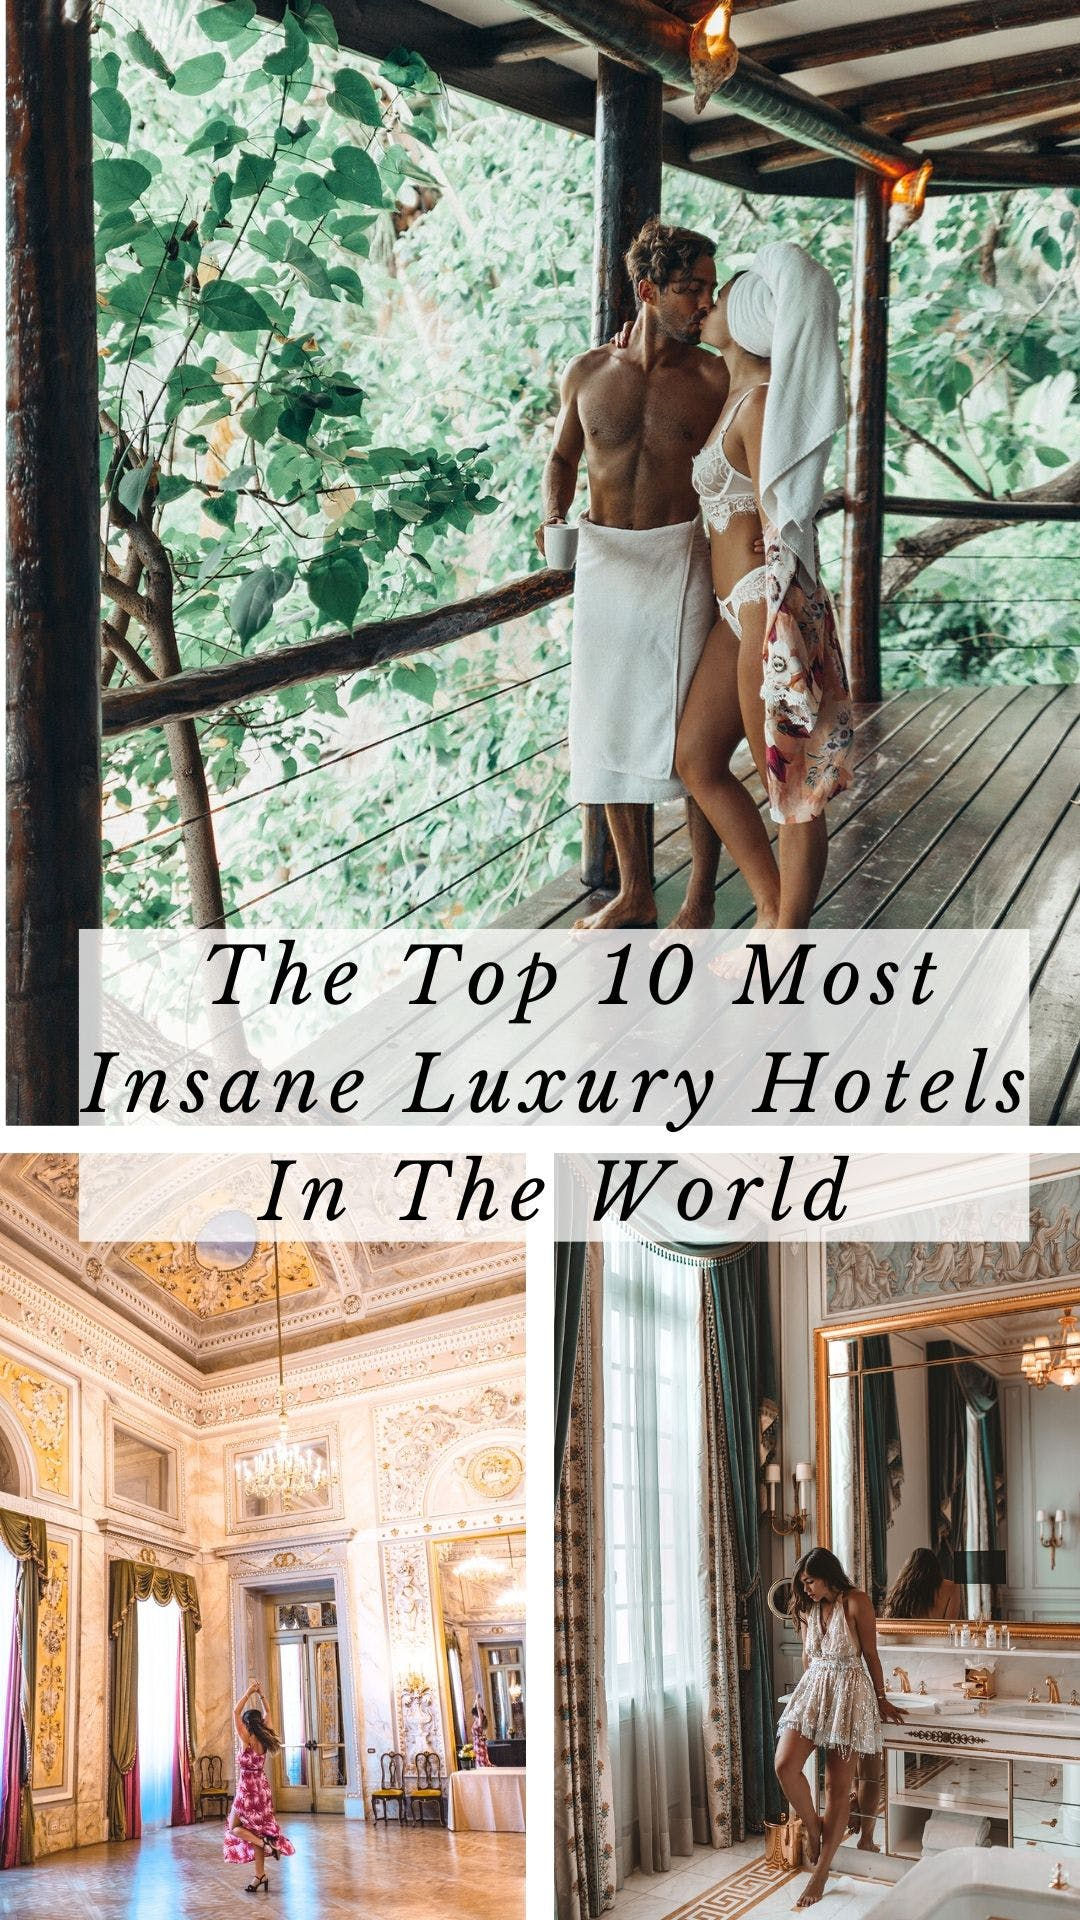 After traveling the world for the last few years, these are the top 10 luxury hotels in the world to add to your bucket list. Click here for all the details and inspiration! #travel #luxurytravel #luxuryhotels #luxurylifestyle   best luxury hotels in the world   luxury hotels interior   luxury hotels Europe   luxury hotels beach   luxury hotels city   luxury hotels around the world   luxury travel destinations   luxury travel lifestyle   luxury travel hotel   luxury travel beautiful places